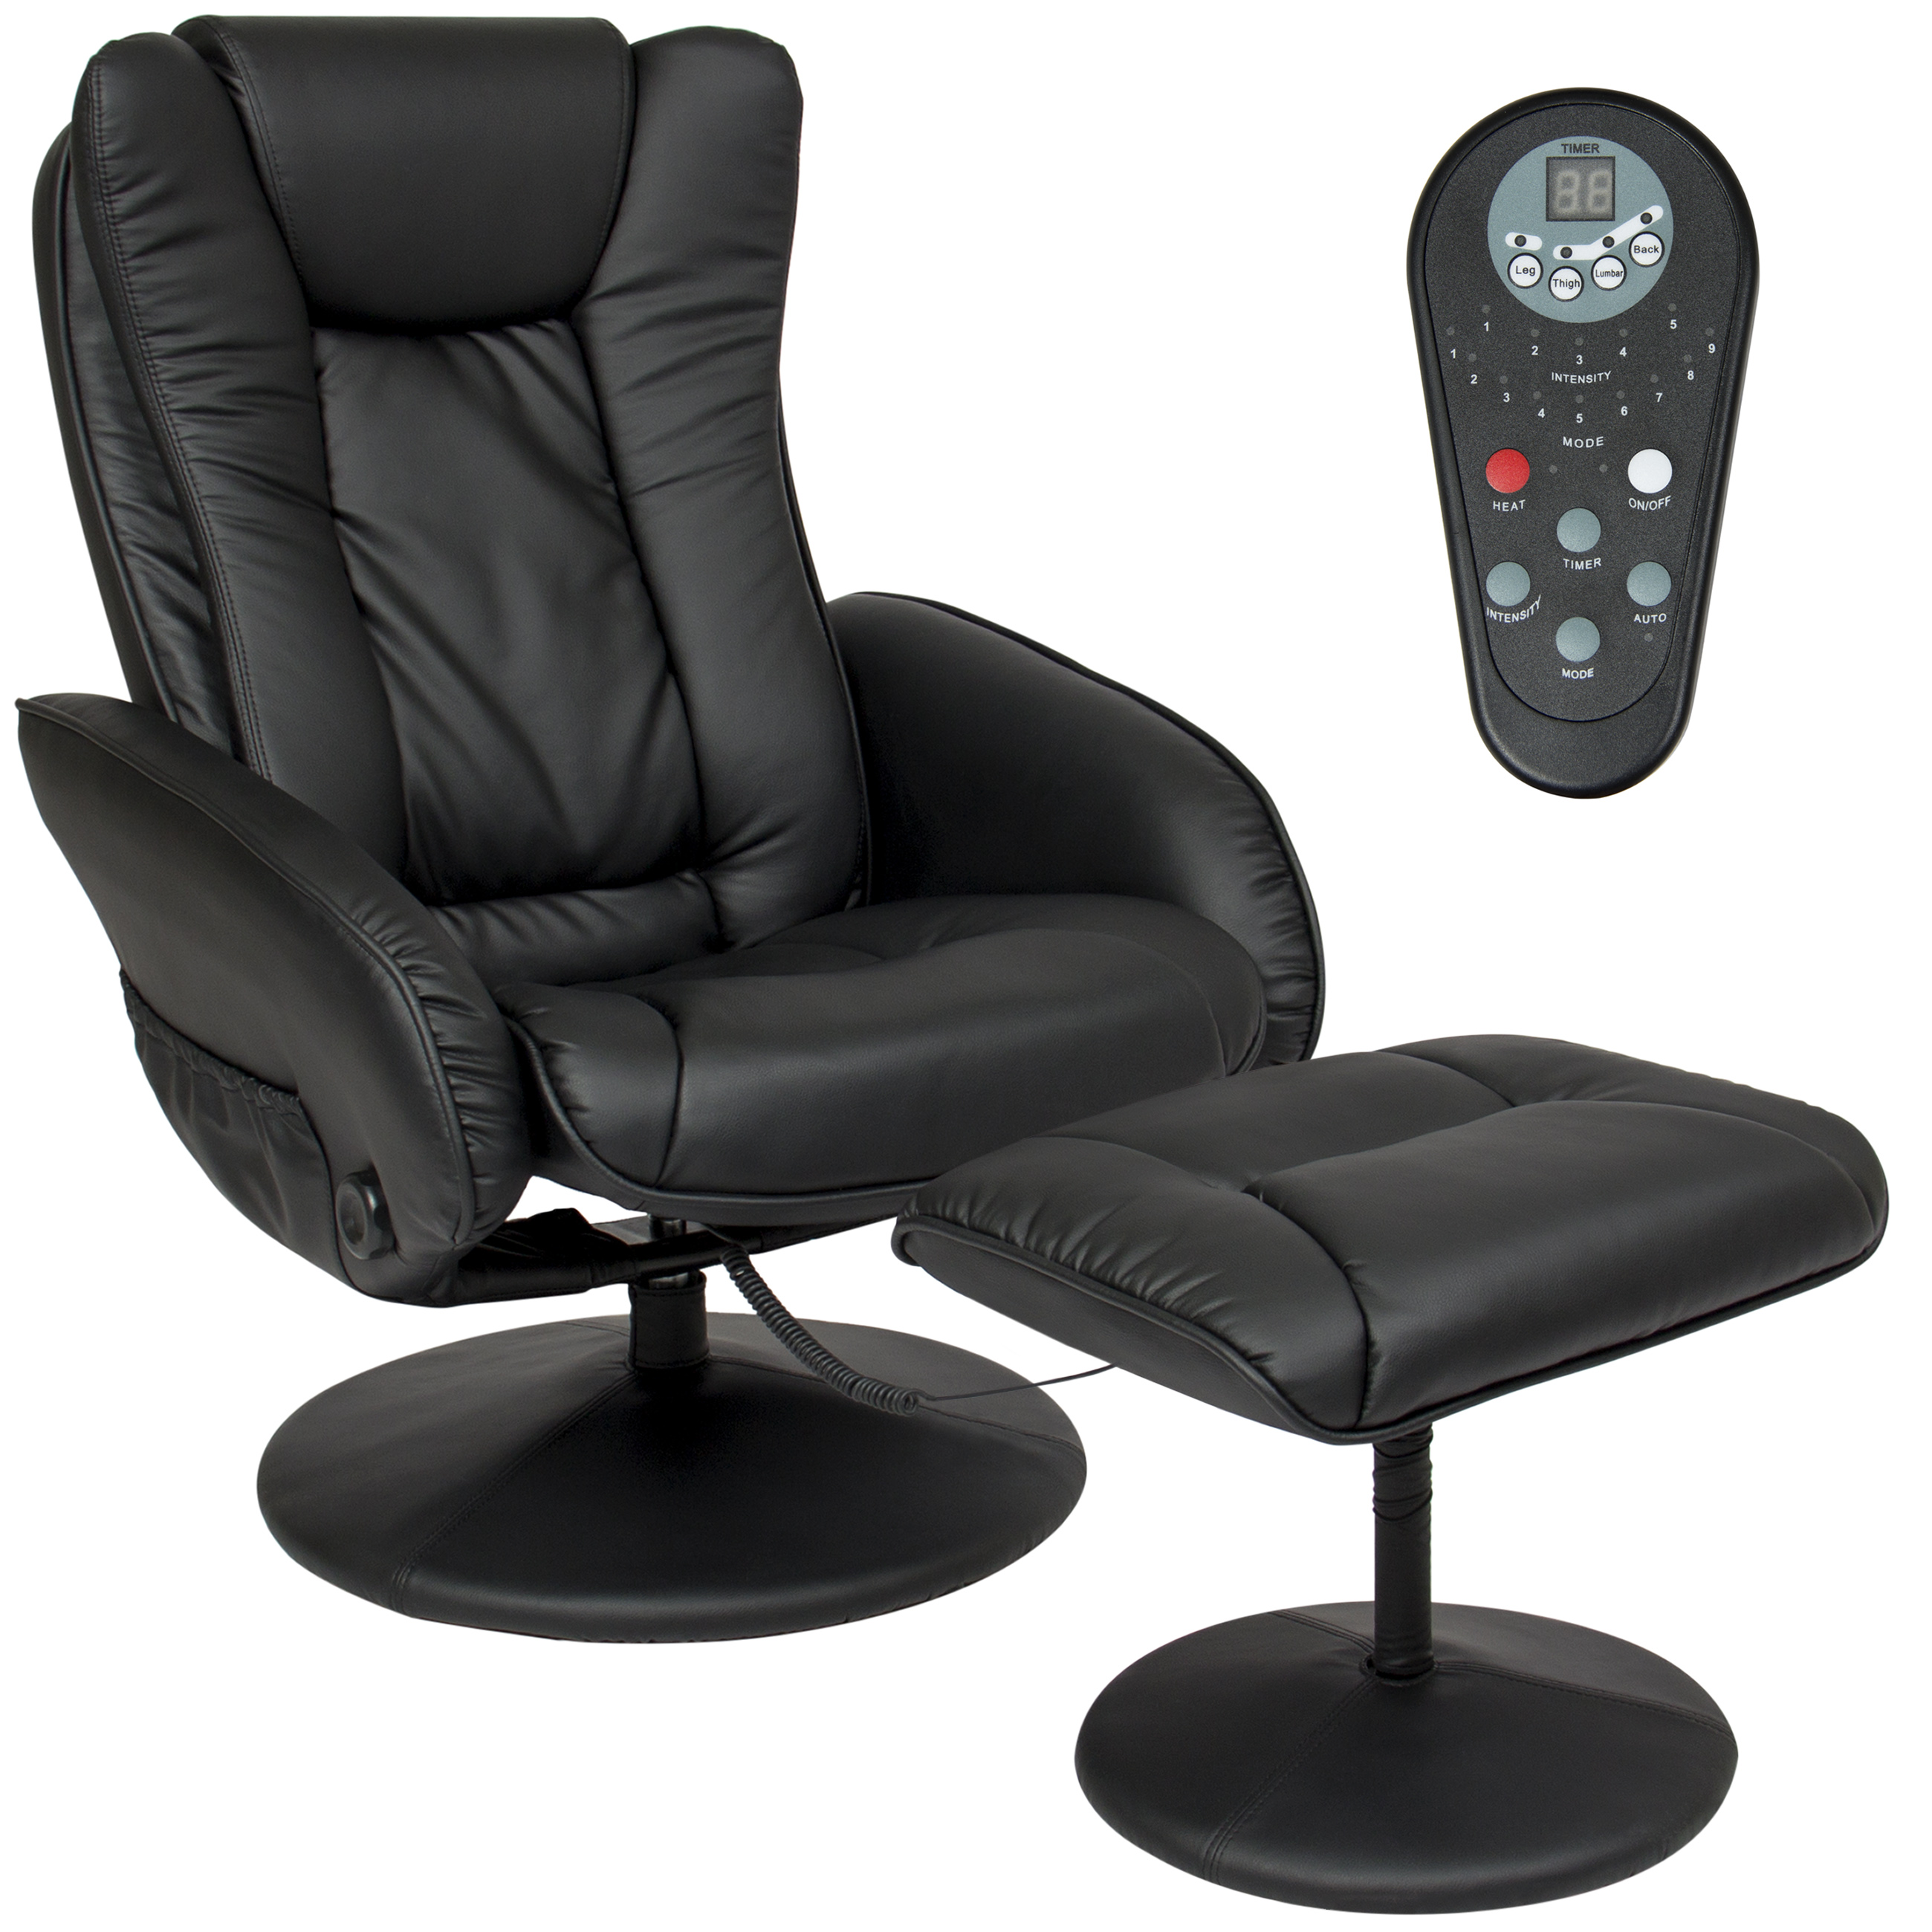 Leather Massage Recliner and Ottoman Set W/ Double Padding, Remote- Black